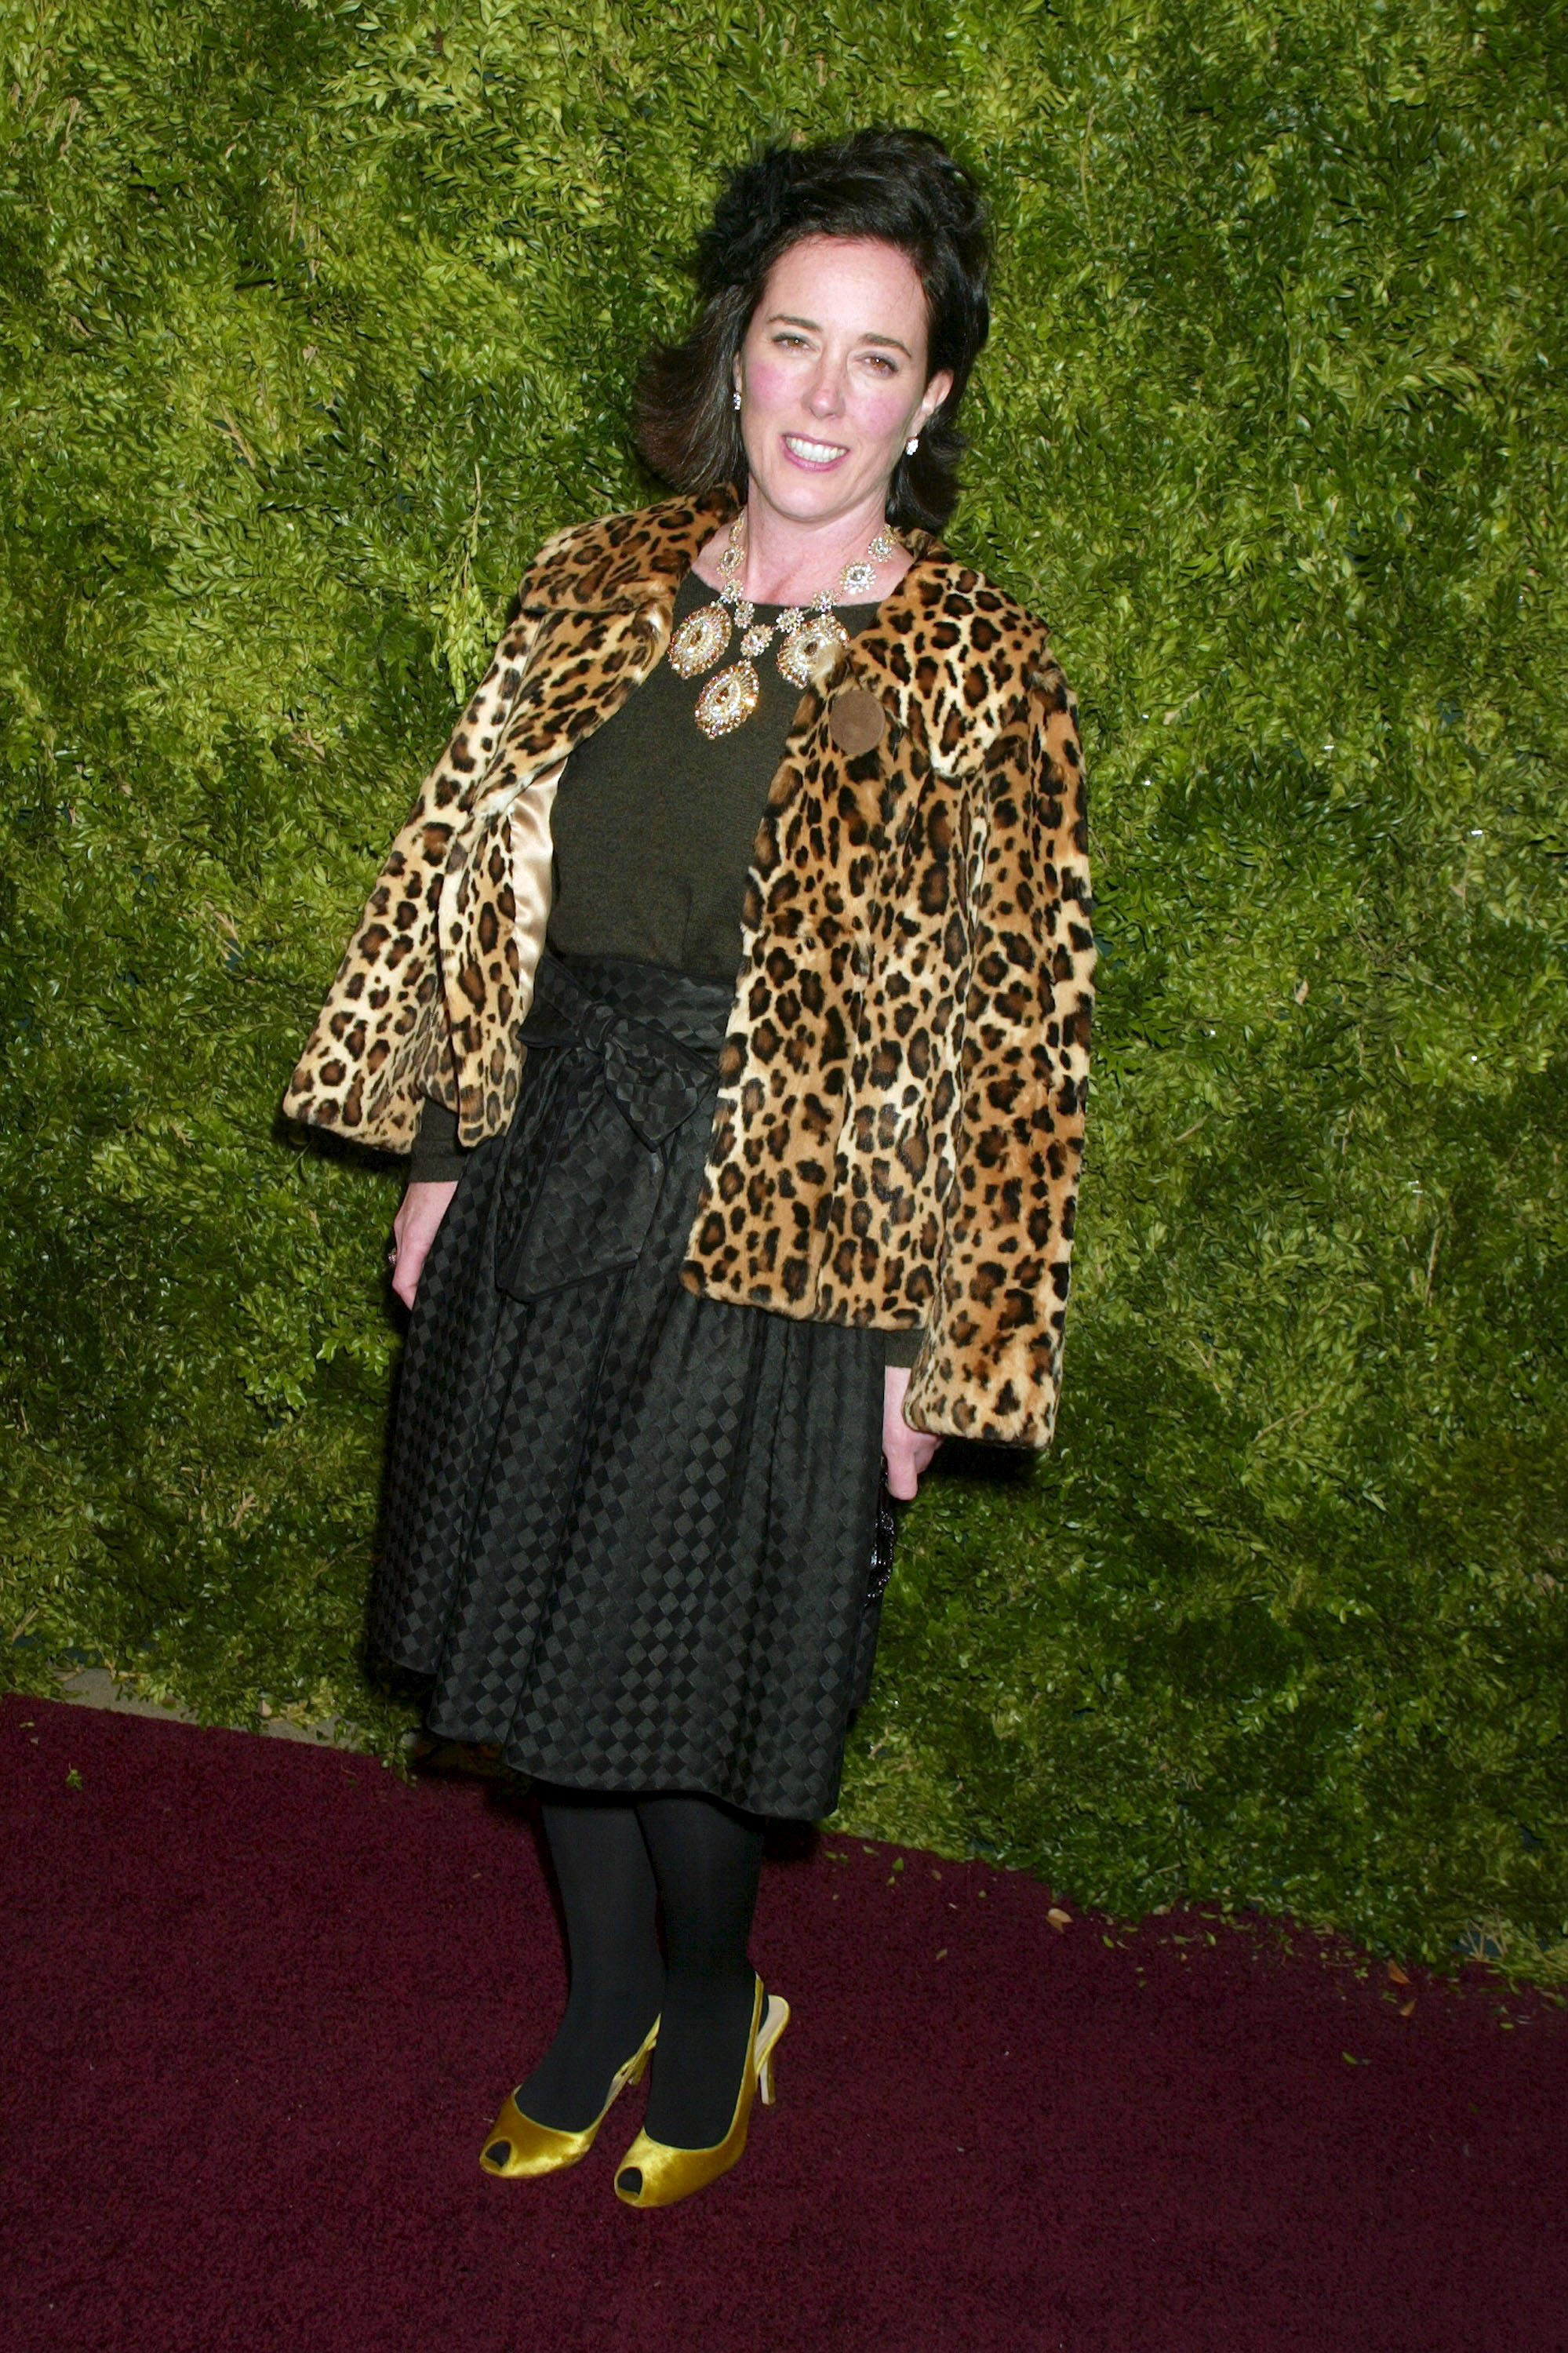 "<div class=""meta image-caption""><div class=""origin-logo origin-image none""><span>none</span></div><span class=""caption-text"">Kate Spade at Splashlight Studios in New York in 2005 (Gregory Pace/REX/Shutterstock)</span></div>"